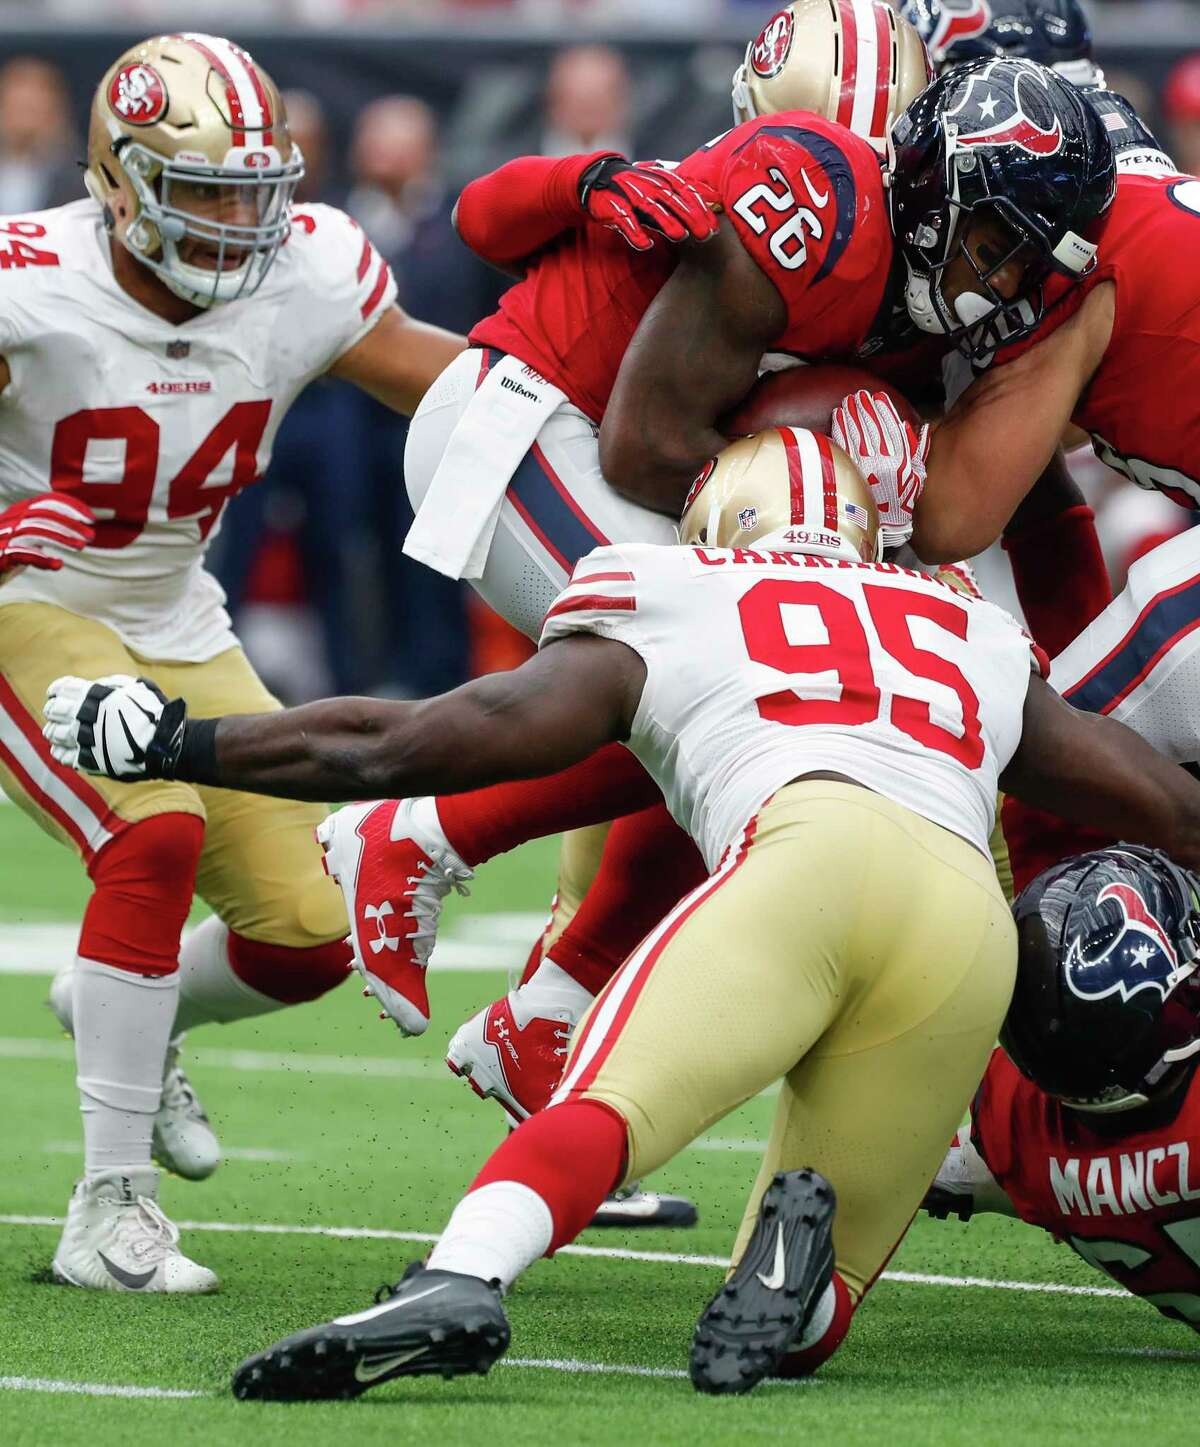 JOHN McCLAIN GRADES THE TEXANS AFTER LOSS TO 49ERS Running back The Texans have no running game because the offensive line can't open  enough holes to help Lamar Miller, who averaged 3.1 yards on 17 carries. Without T.J. Yates' 31 yards, they would have had 59.  Grade: D